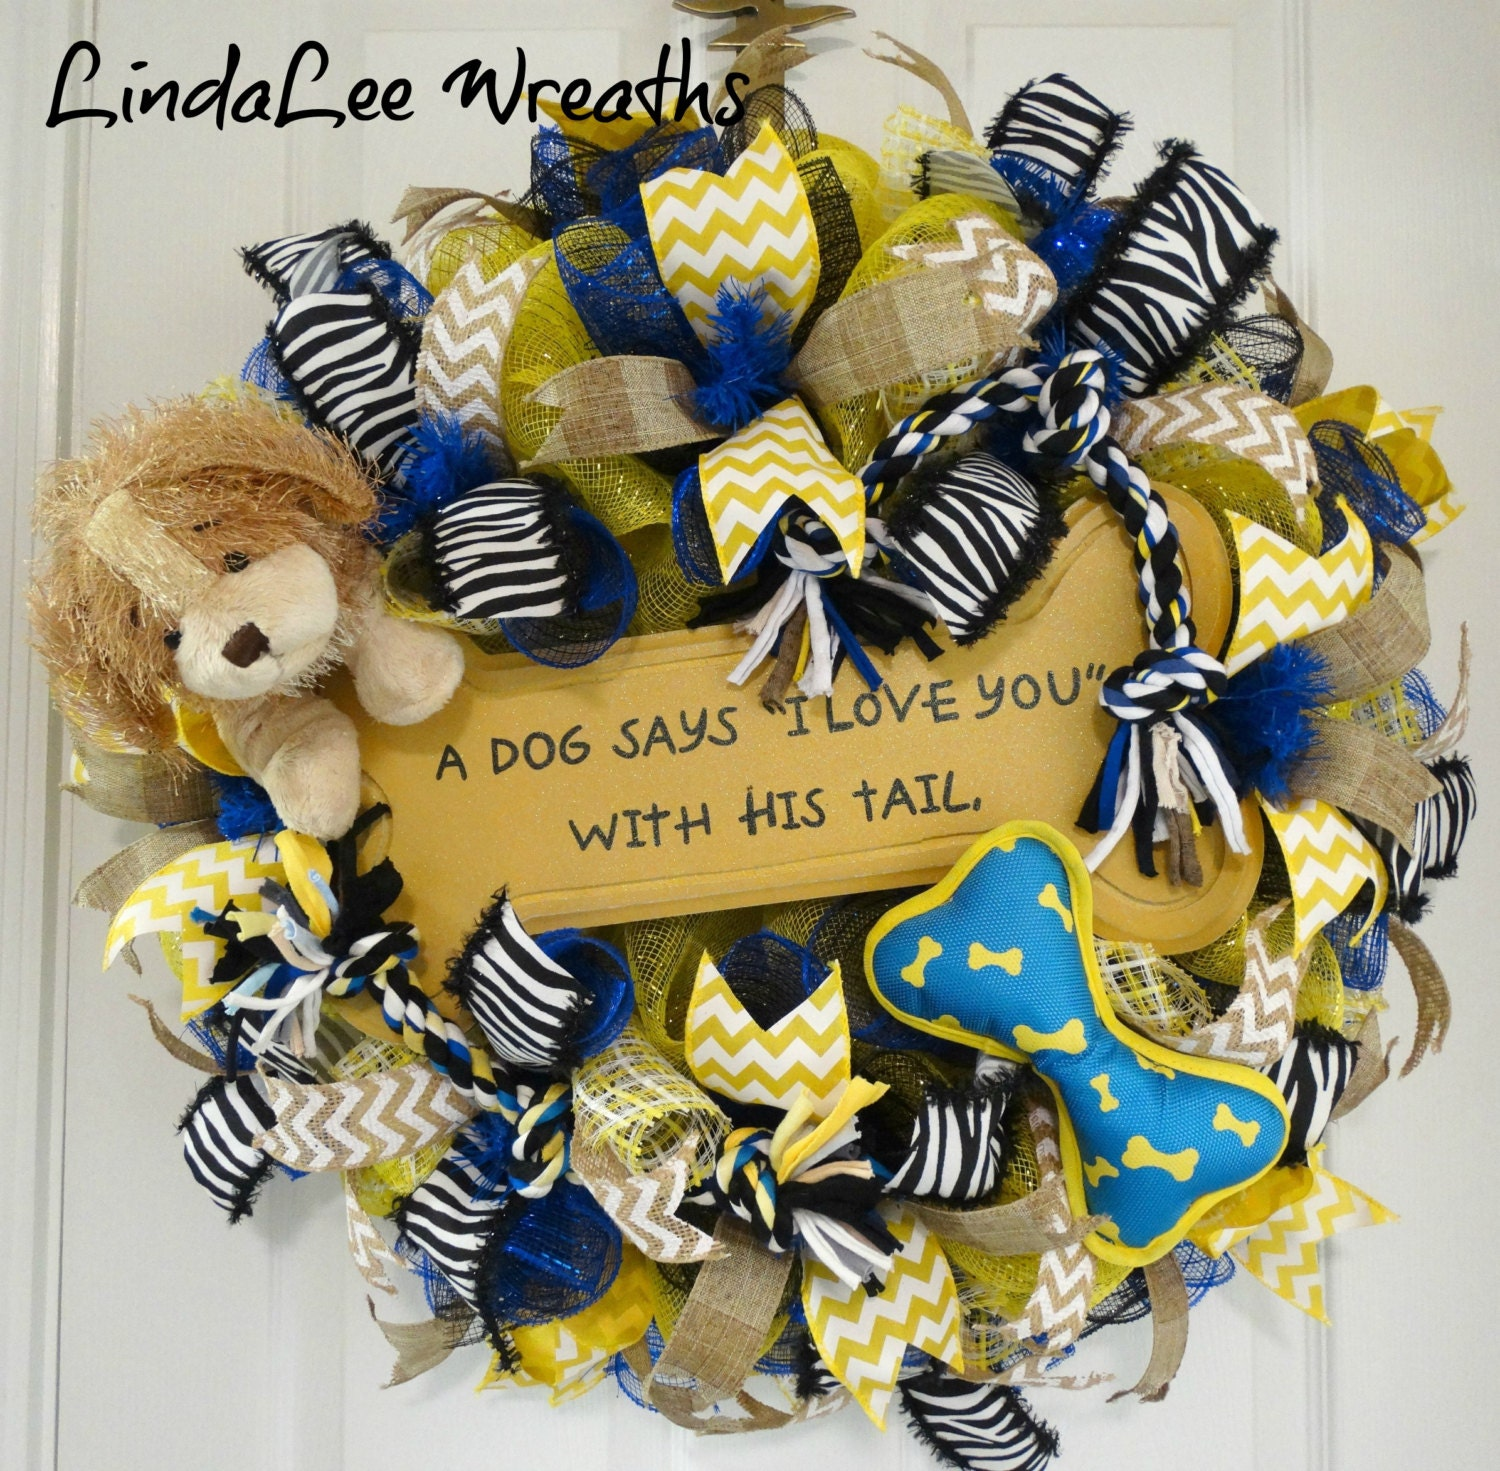 Deco Mesh Dog Wreath In Black Blue And Yellow Pet Themed